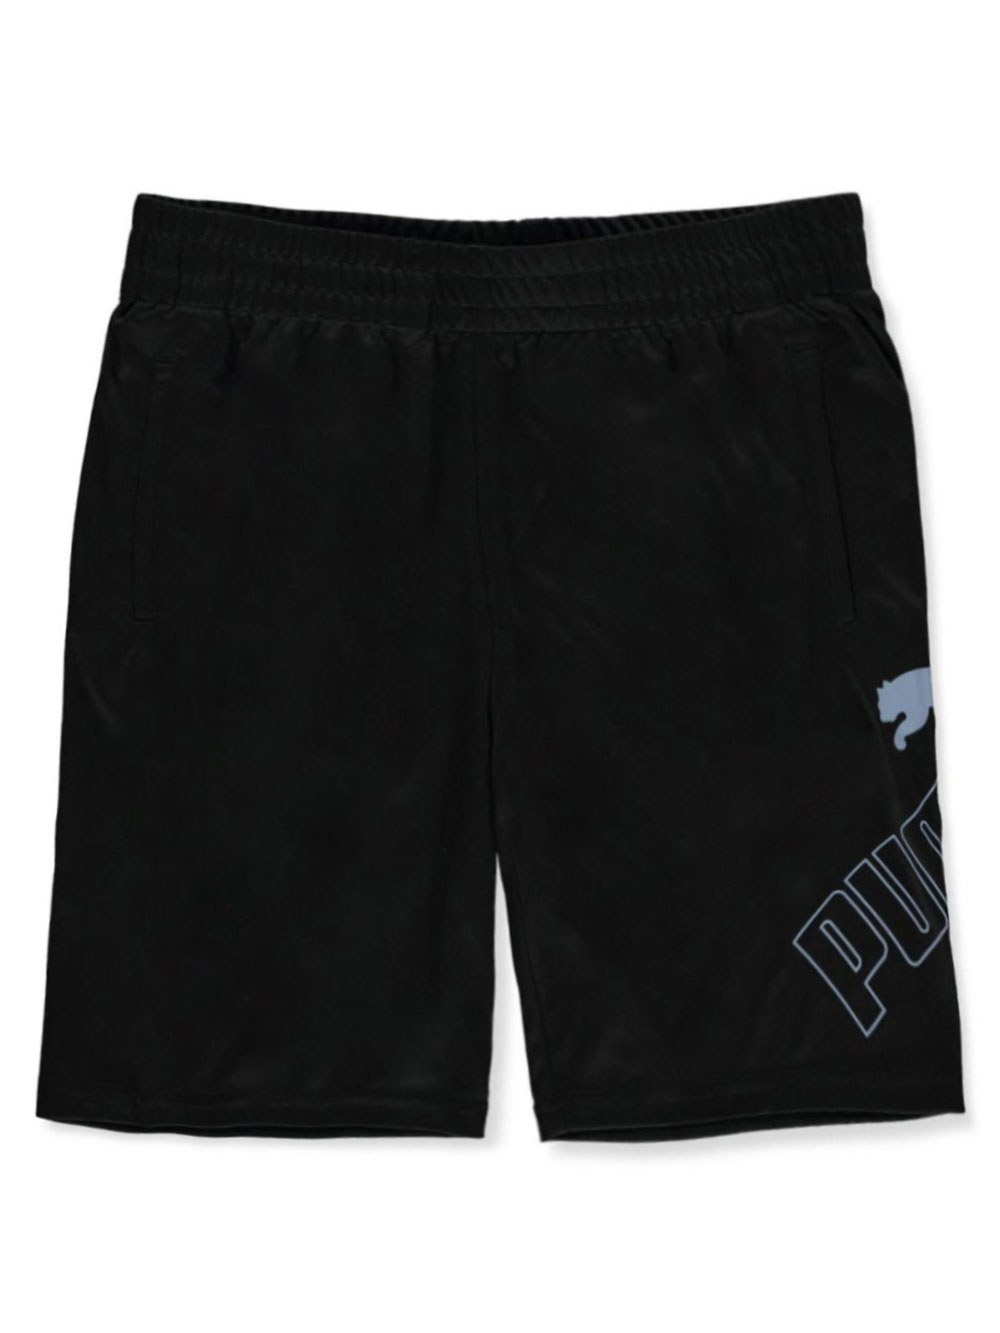 Boys' Performance Athletic Shorts